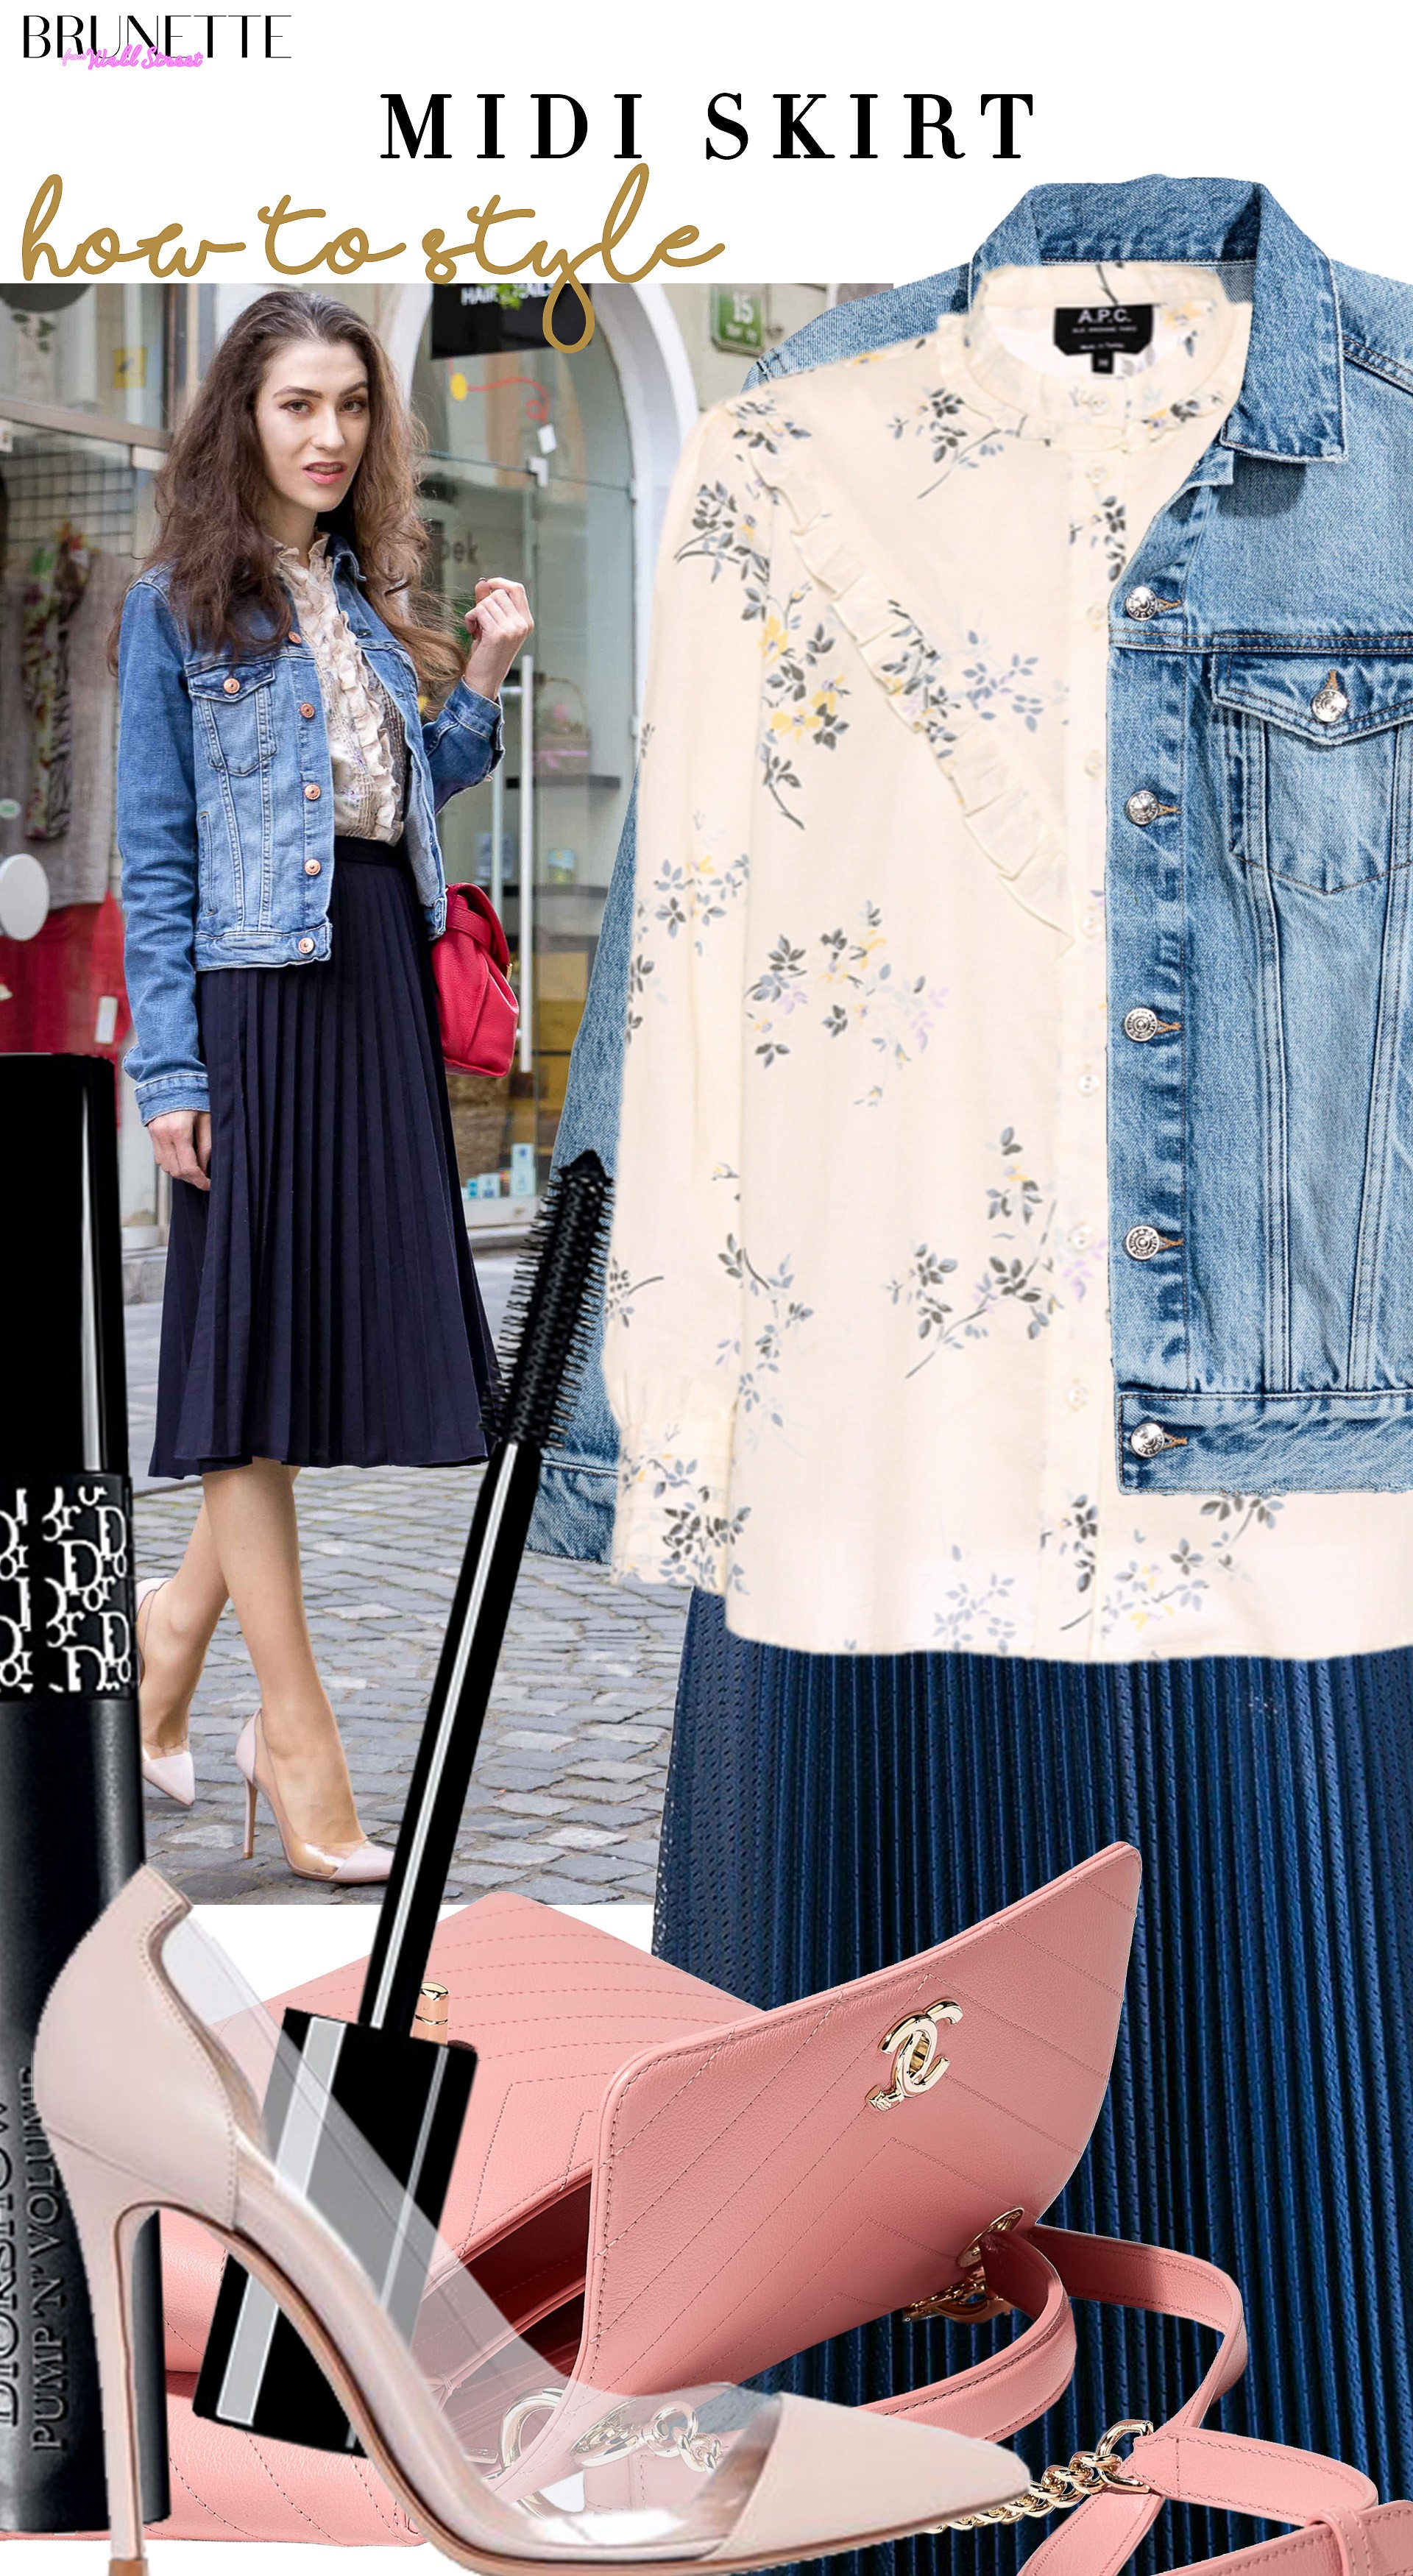 9d13f816525d Best Spring Brunch Outfits to Wear Now | Brunette from Wall Street